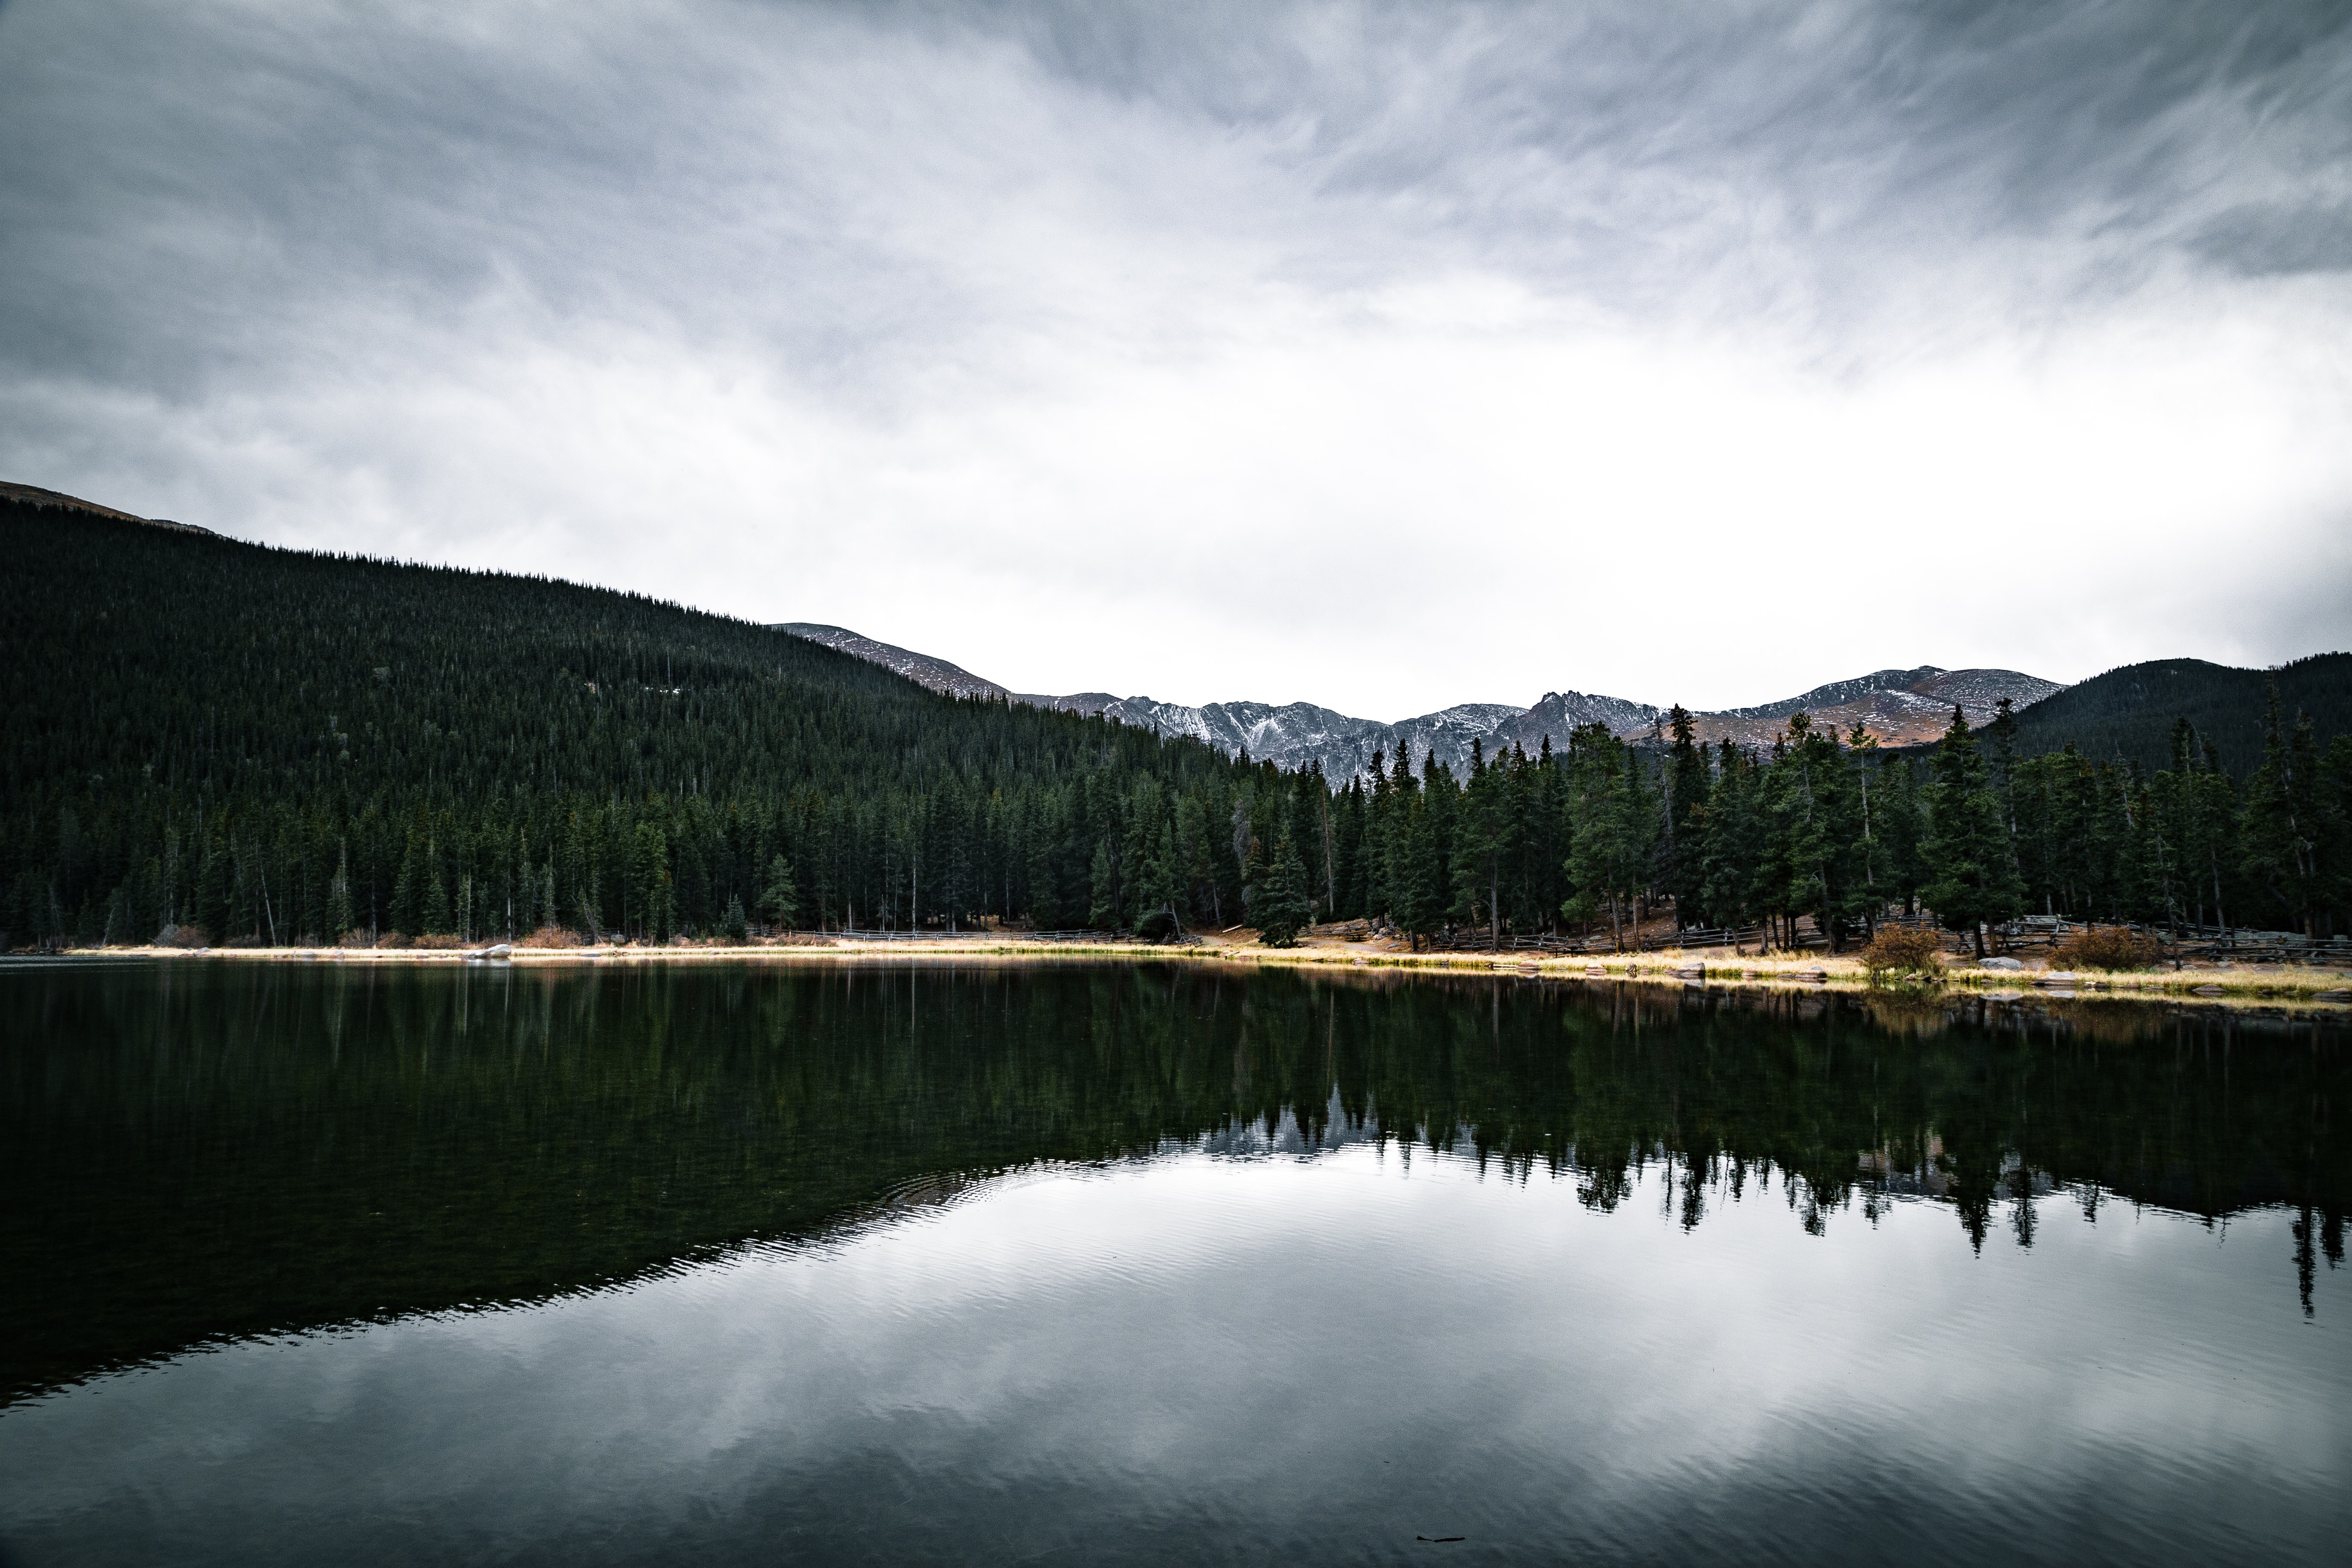 body of water beside trees and mountain with cloudy sky